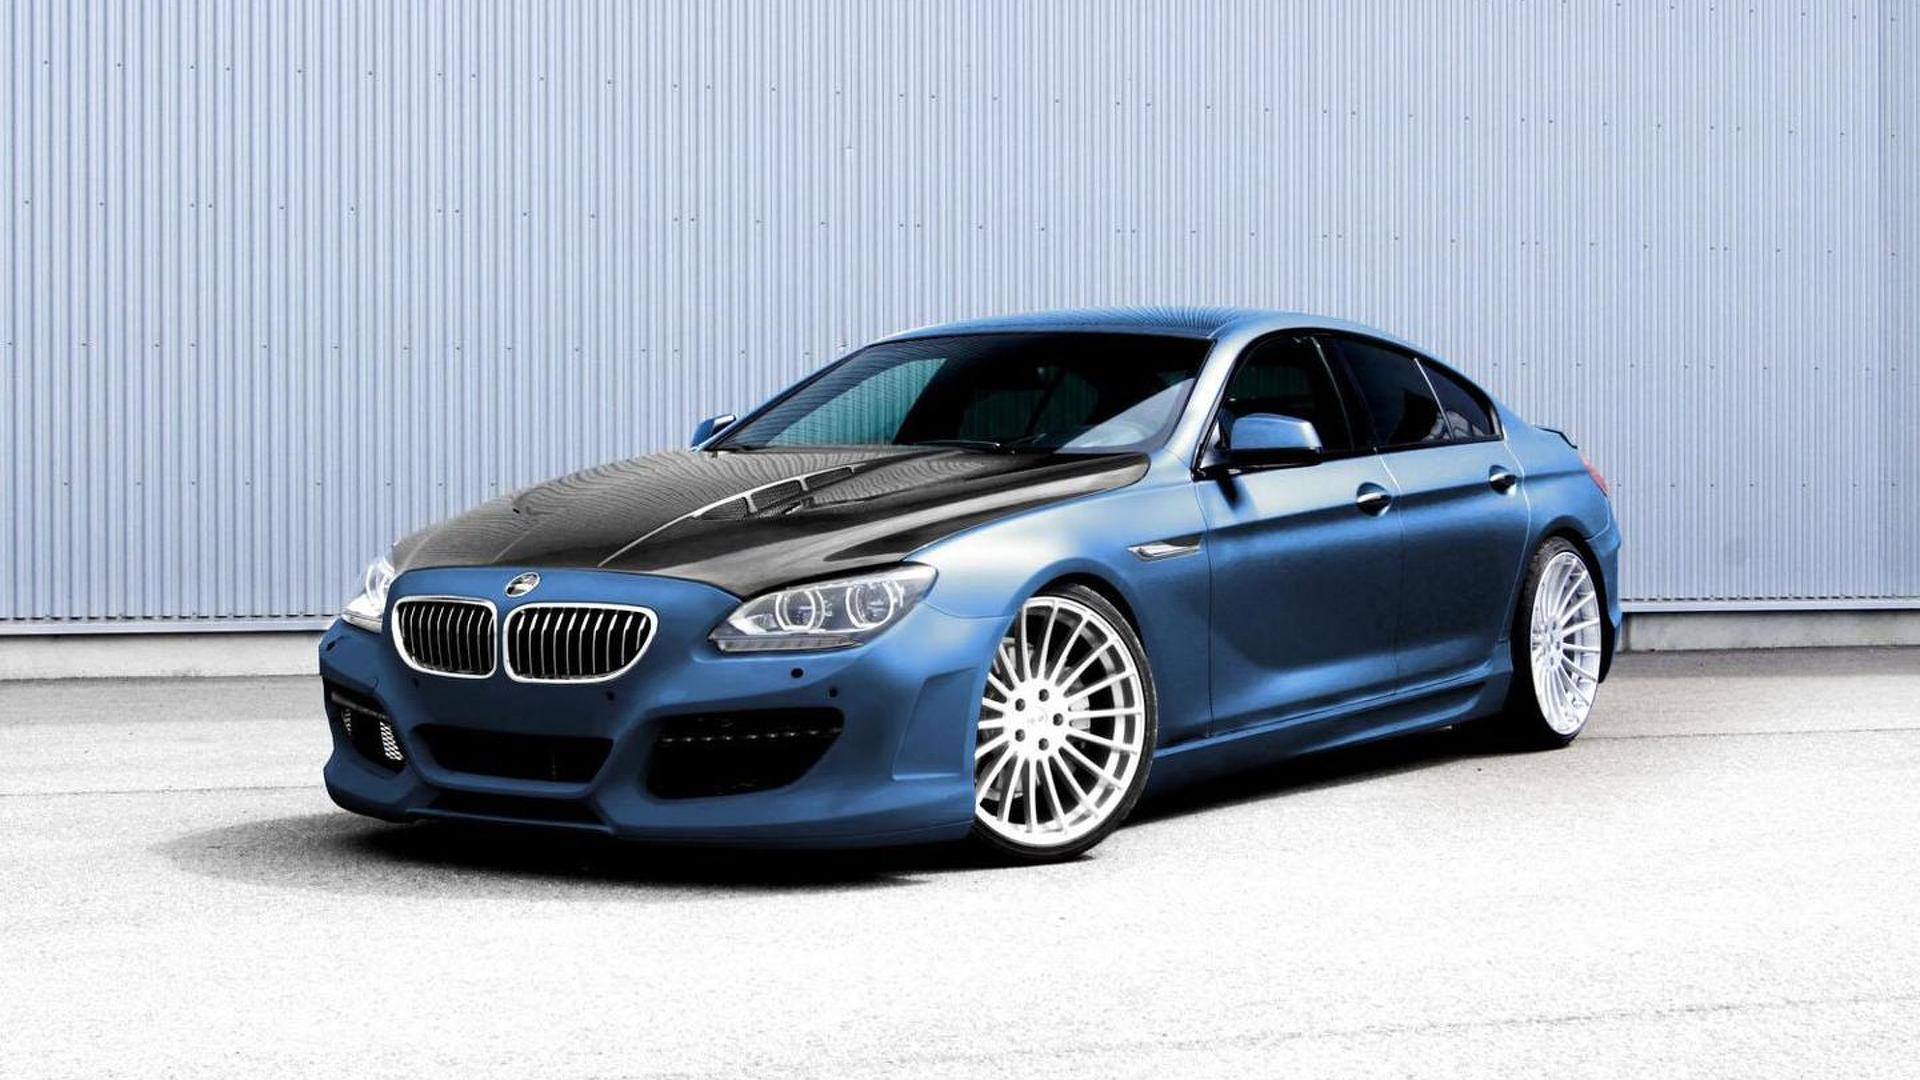 Hamann previews their BMW 6-Series Gran Coupe